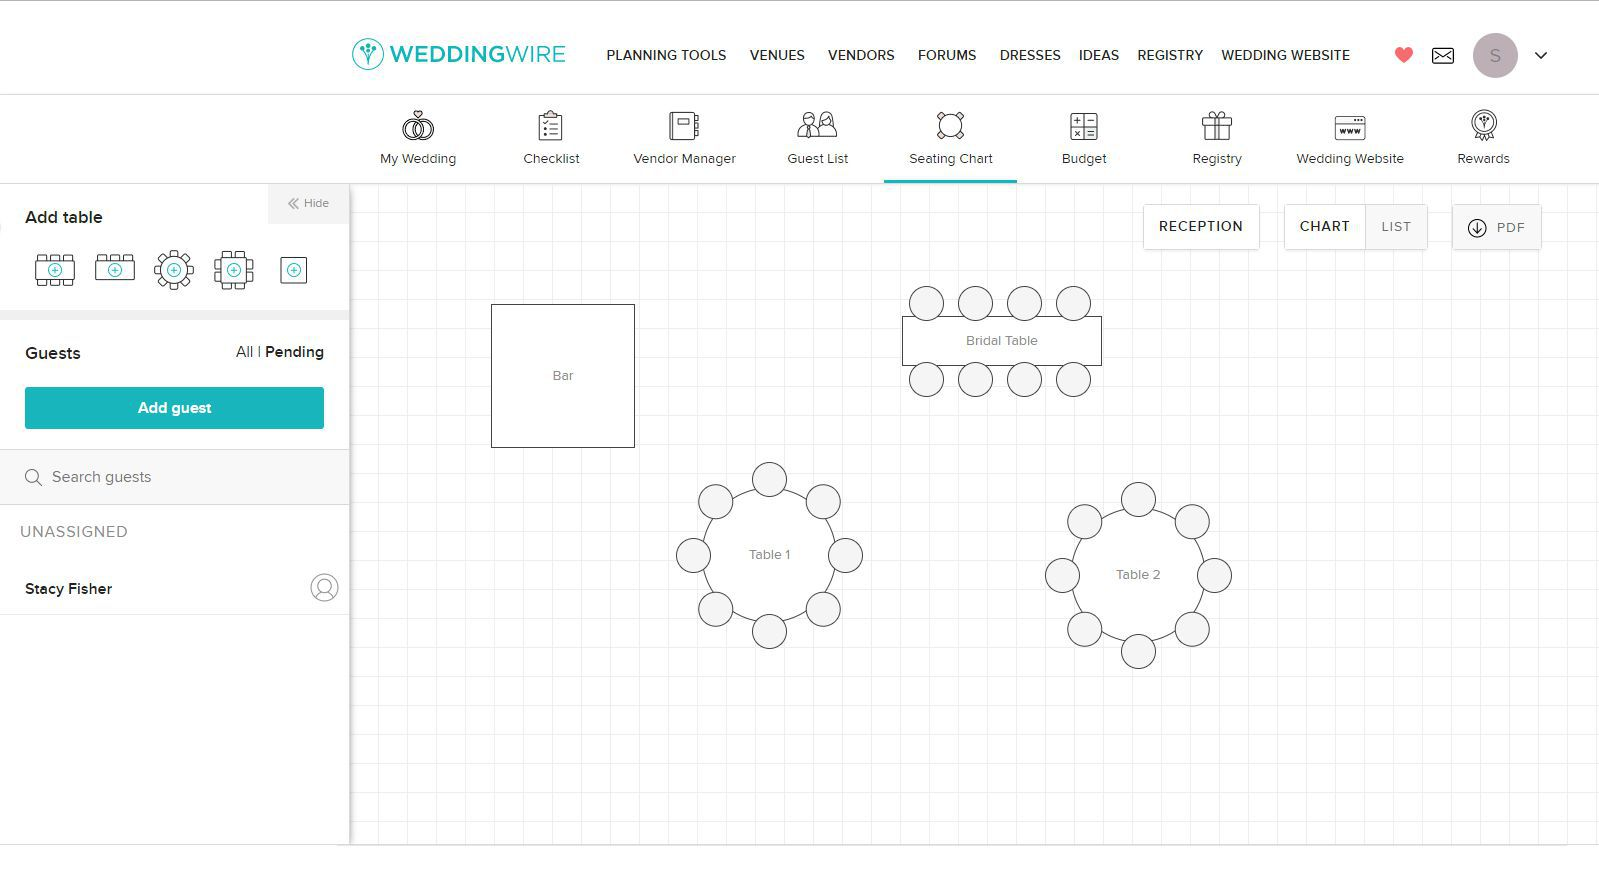 009 Exceptional Seating Chart Template Word High Definition  Wedding Microsoft Free 10 Per TableFull